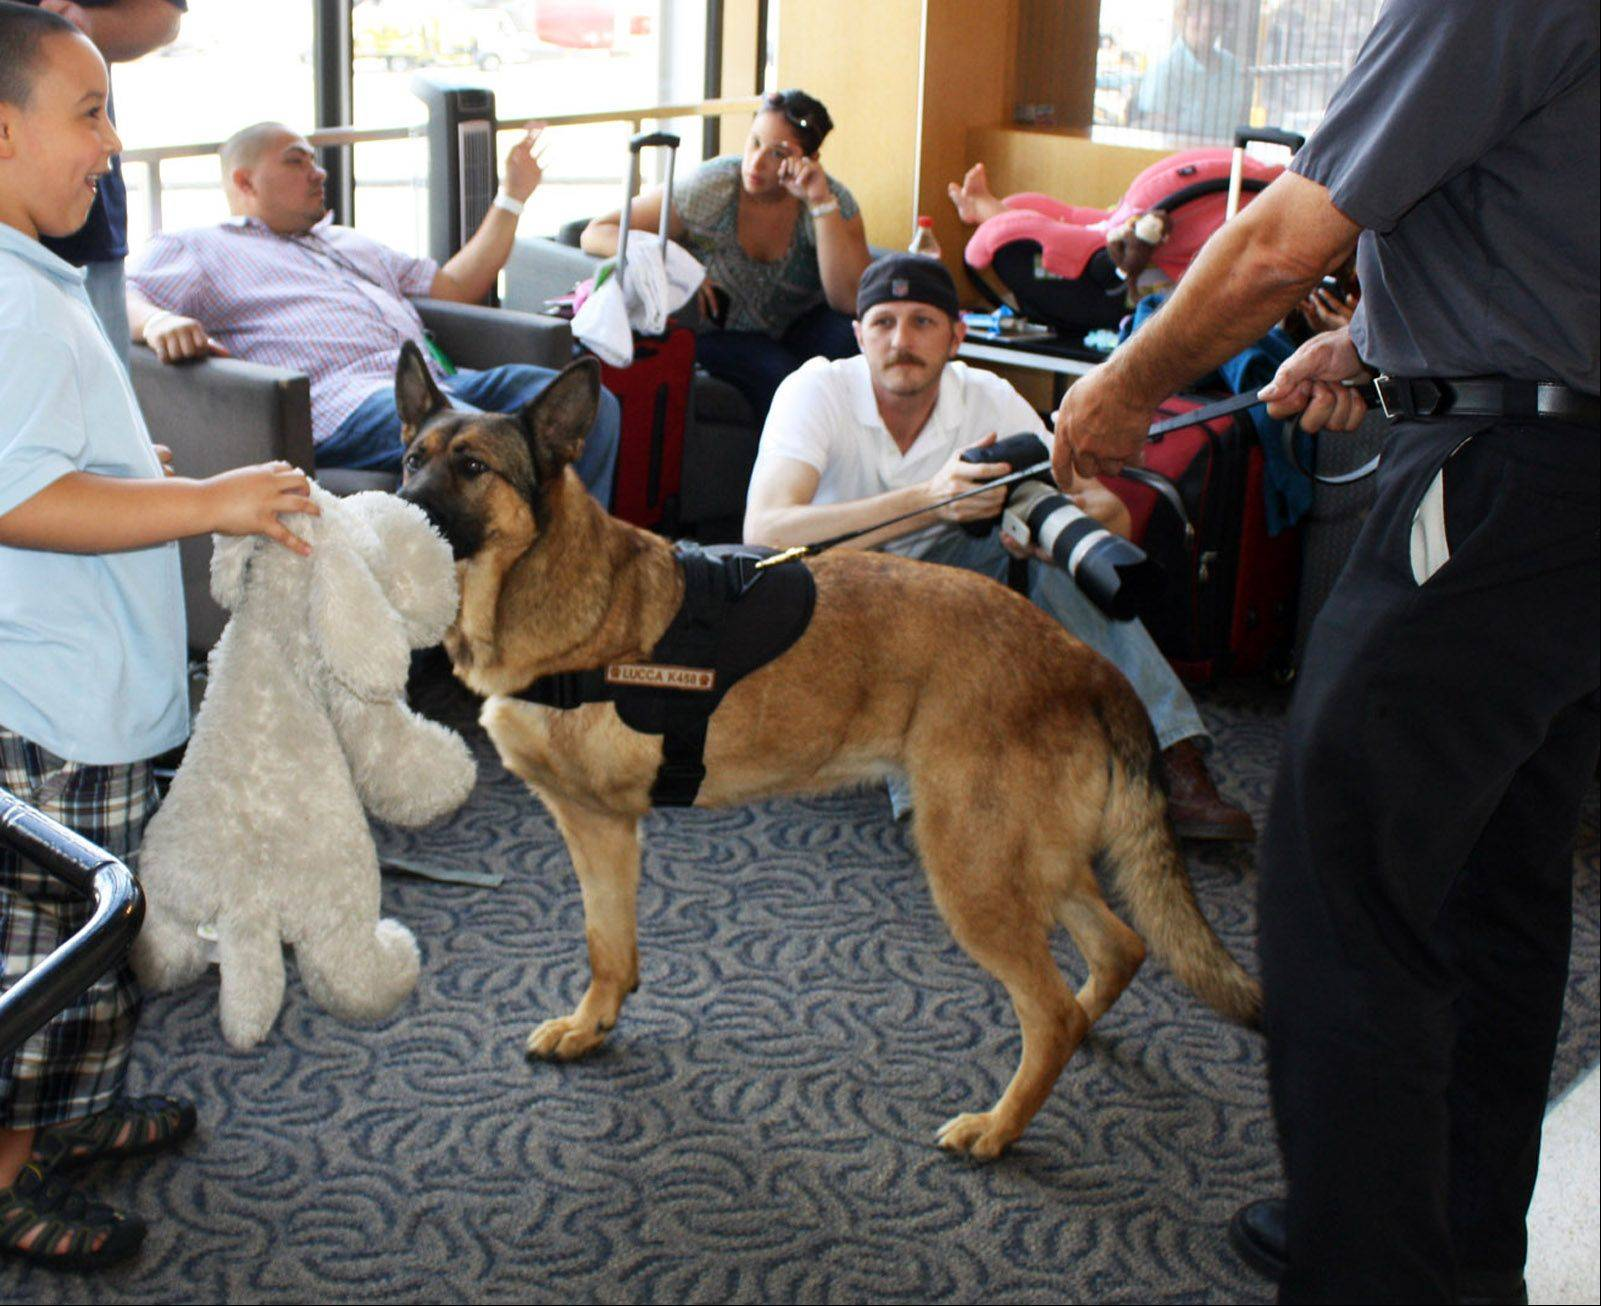 Lucca gets plenty of attention from travelers at O'Hare International Airport on Thursday.